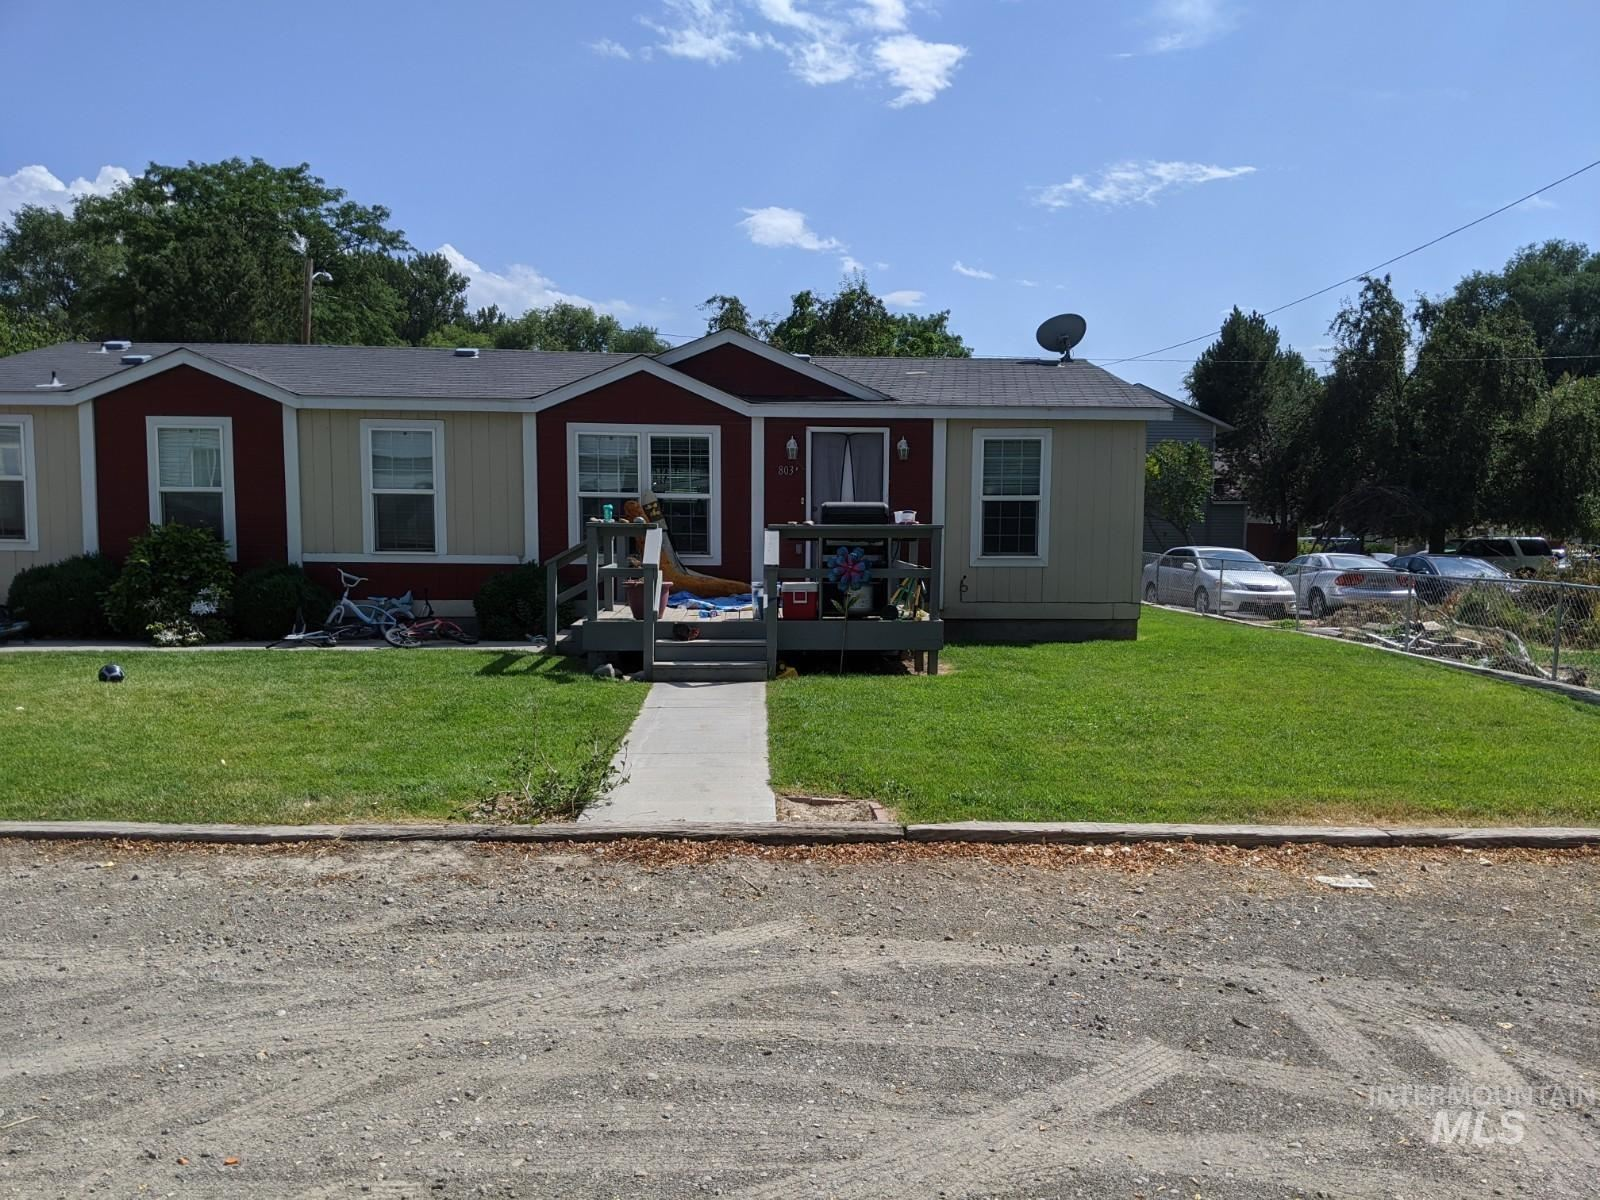 Photo of 803 B D Ave E, Jerome, ID 83338 (MLS # 98776484)